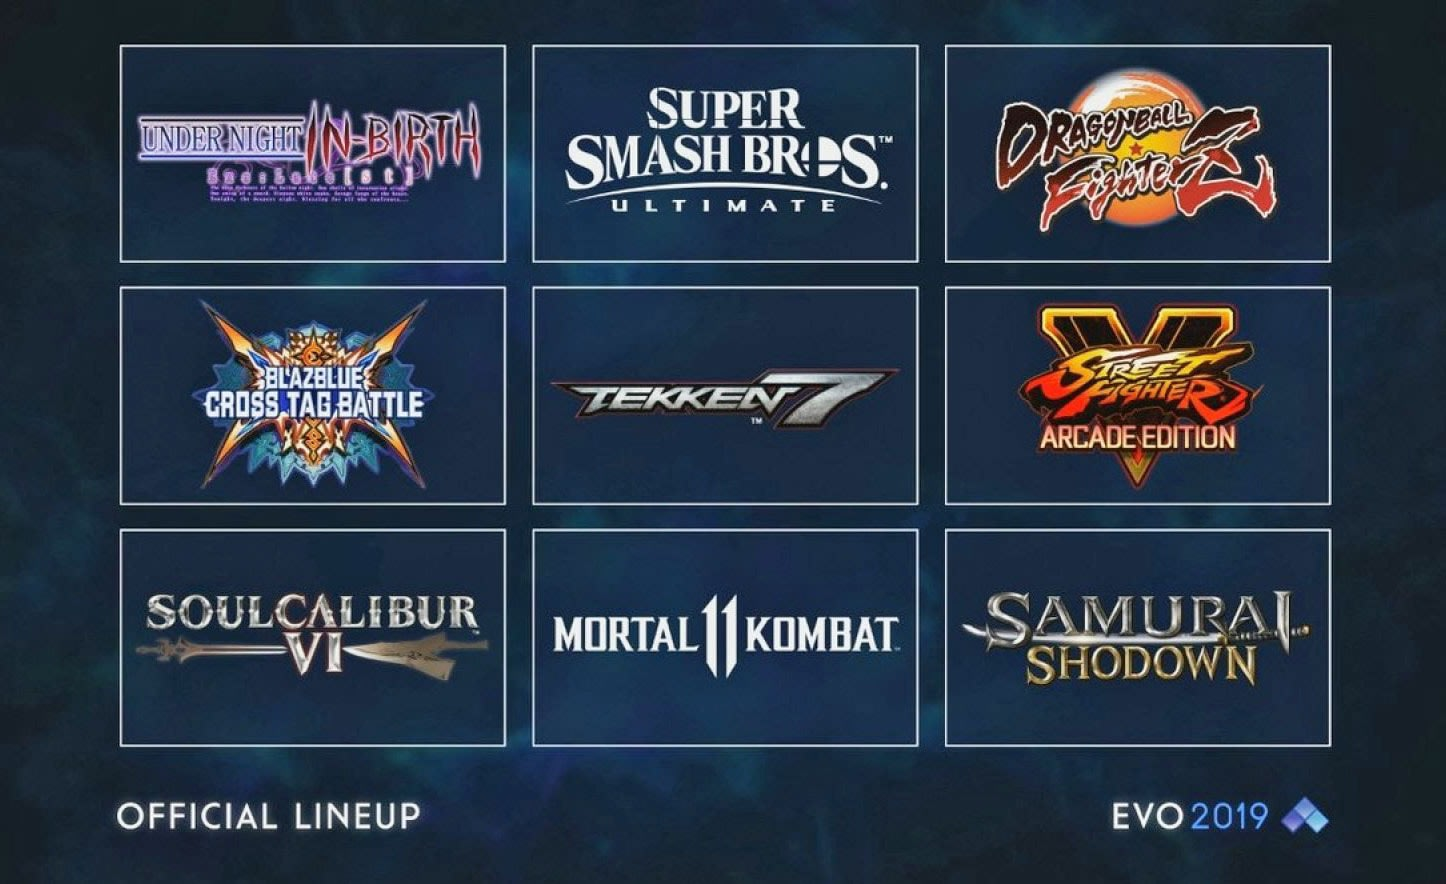 Super Smash Bros  Ultimate' has replaced 'Melee' at Evo 2019